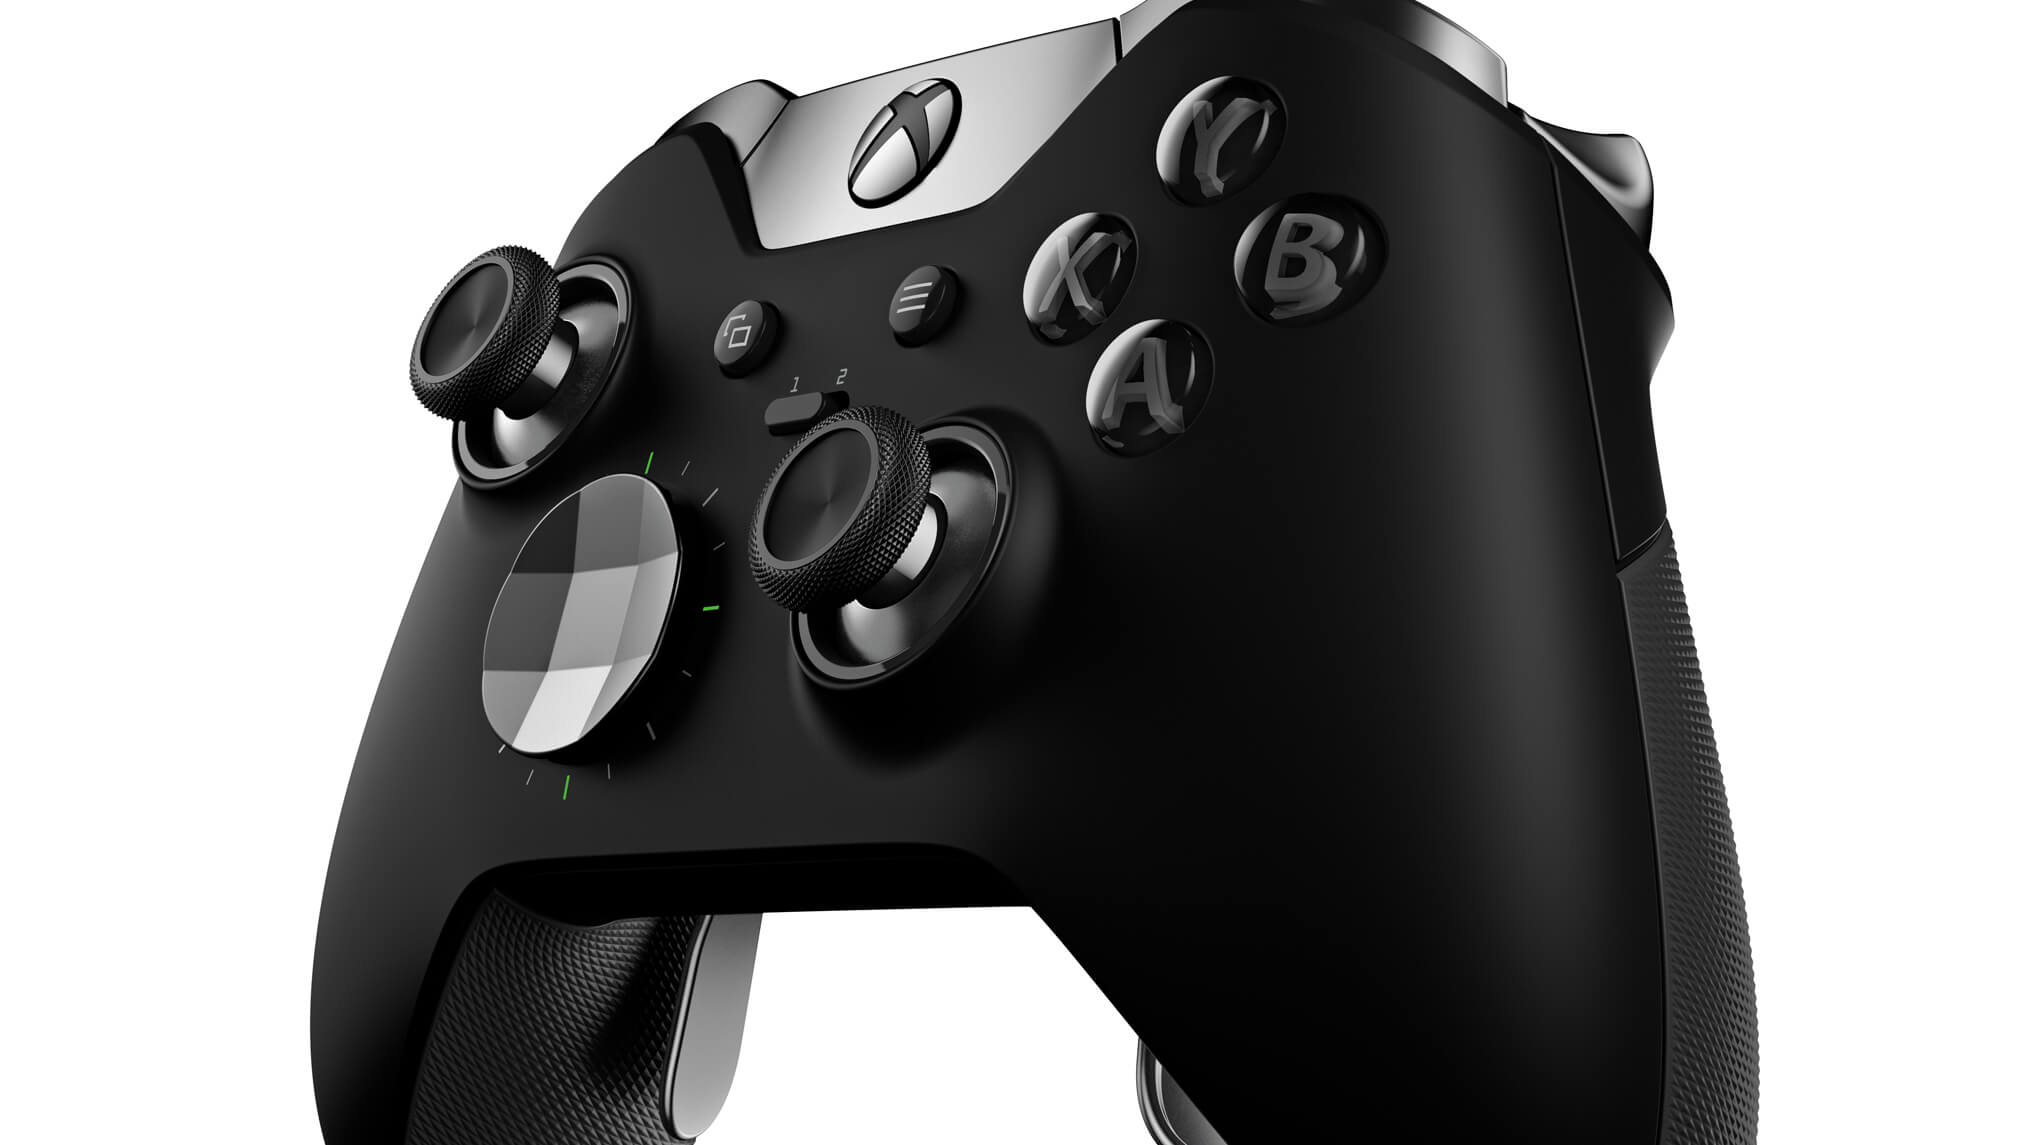 The best video game controller for the PC - TechSpot Forums